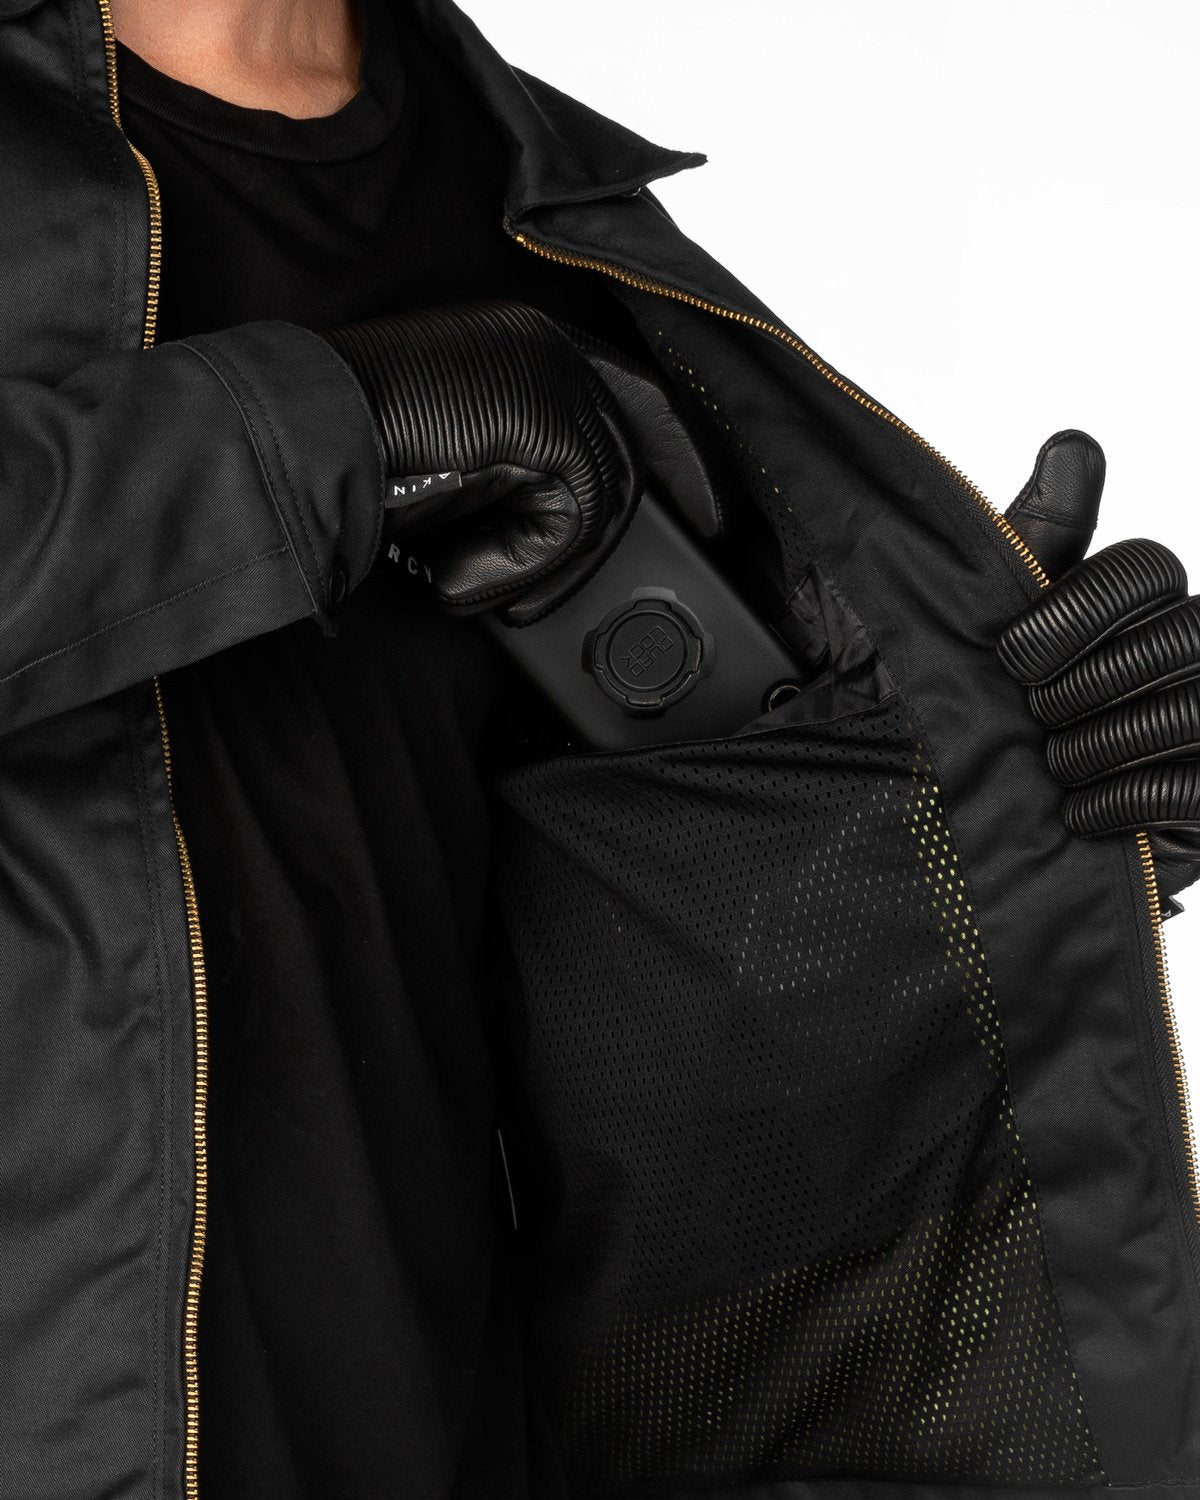 Akin Wrench Motorcycle Jacket